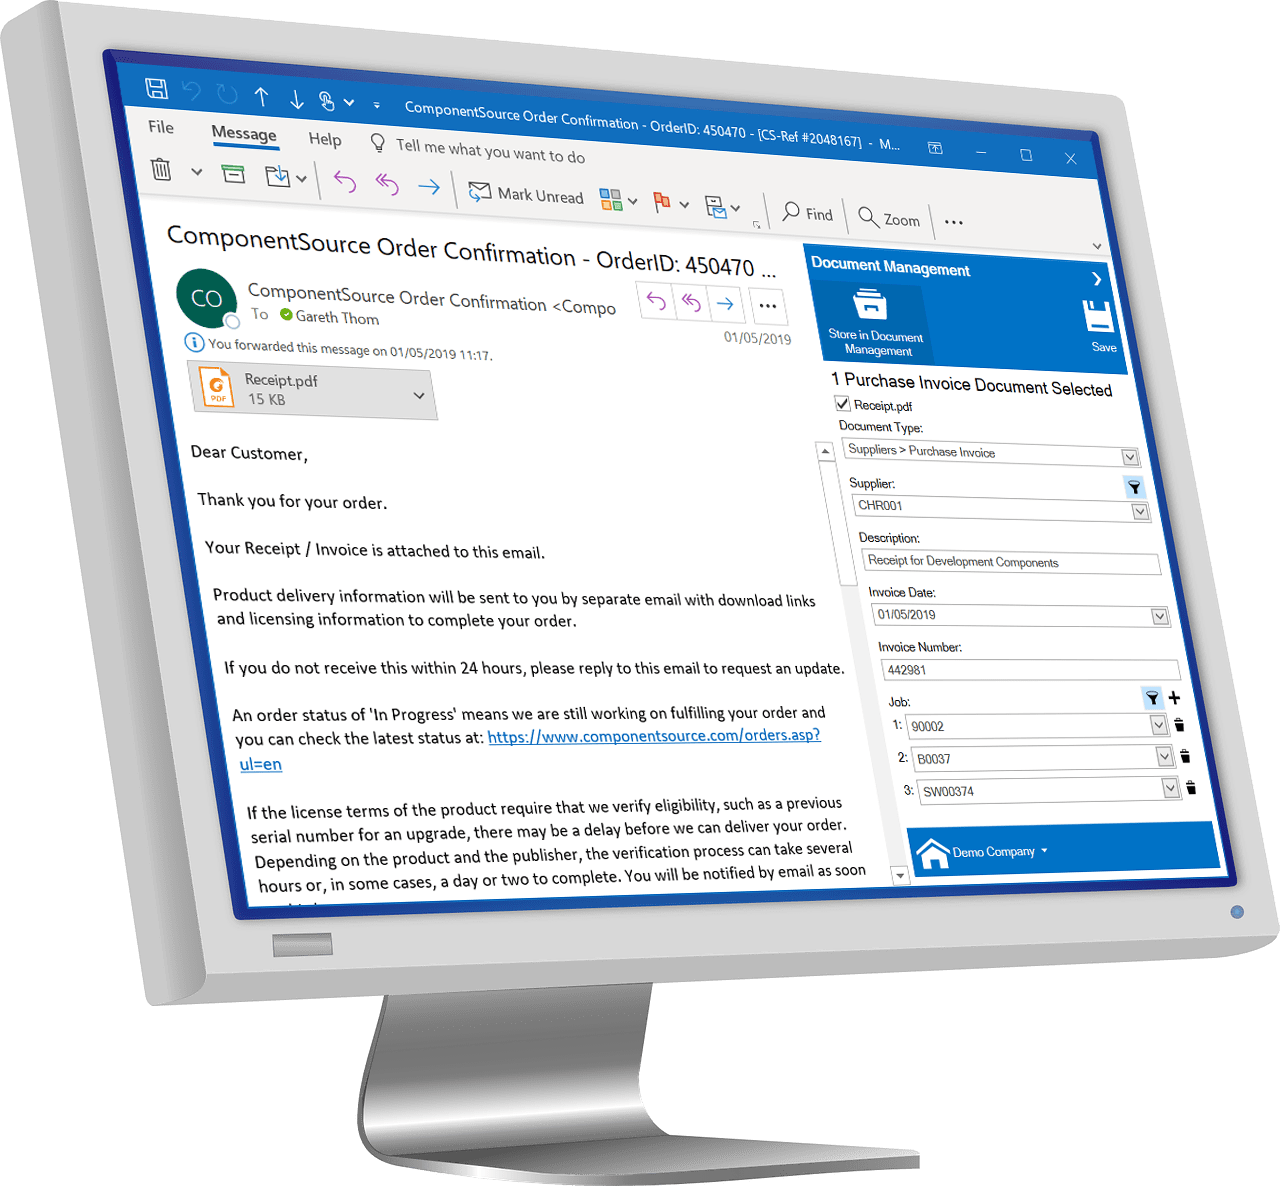 Monitor Displaying Contract Costing Document Management feature